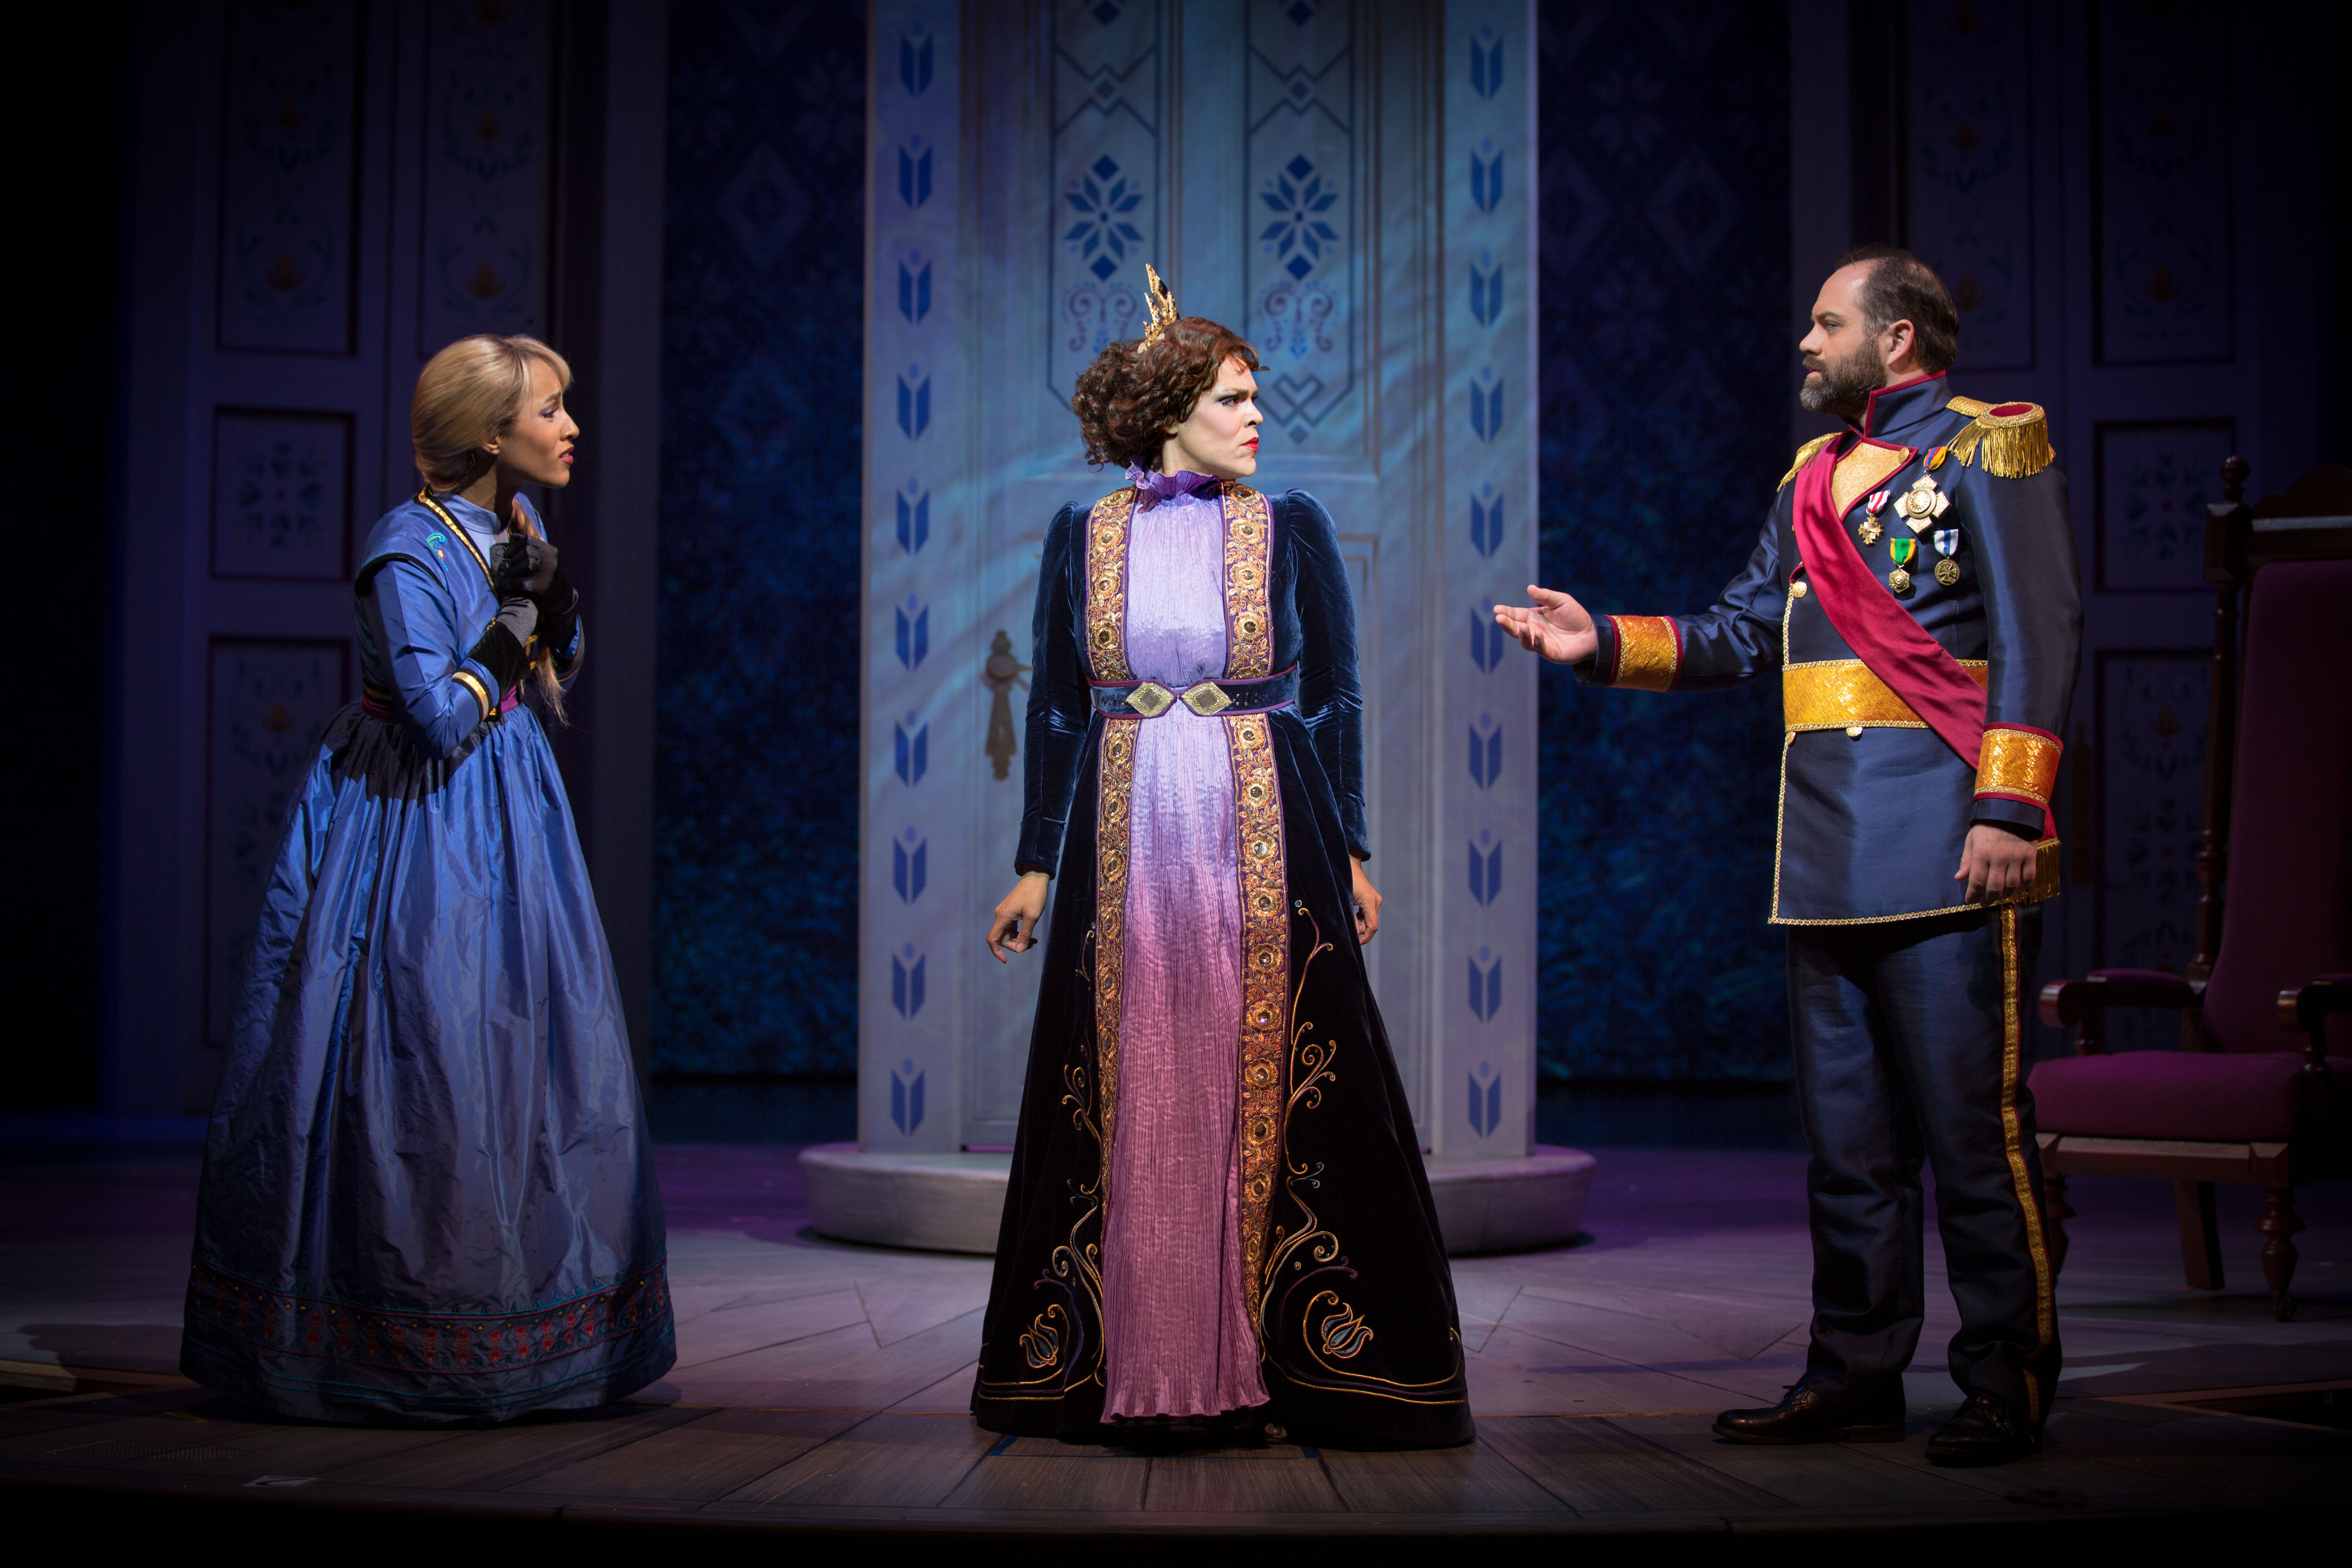 Disneyland Color Blind Cast Their New Frozen Quot Musical